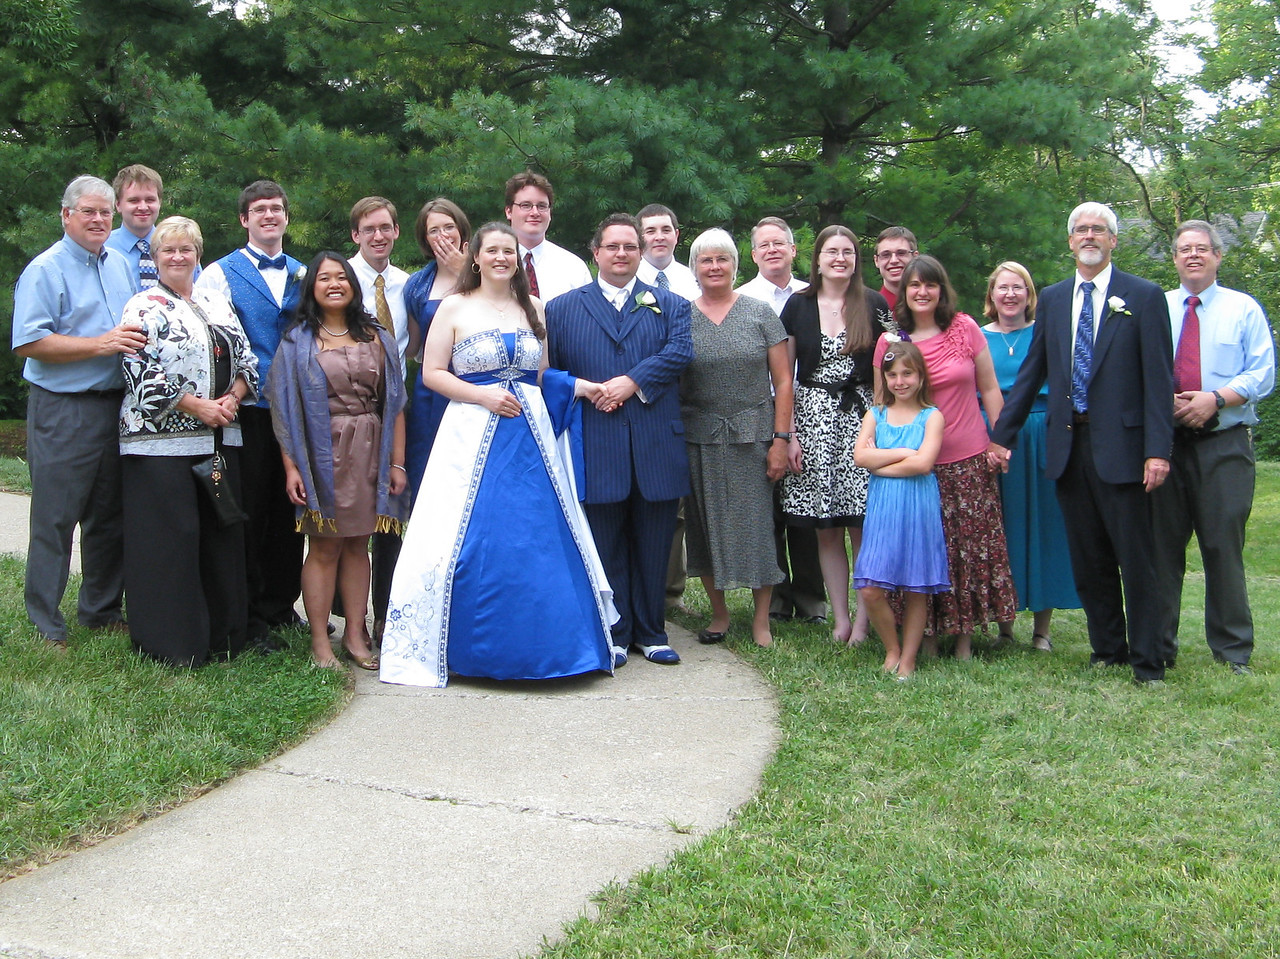 The Proudfoot clan attending Keegan's wedding.  (Front row, L to R): Kathi, Christy, Keegan, Shane, Connie, Leslie, Abby in front of Sonia and Glenn.  (Second row)  Wendell, Nathan, Robert, Kyle, Ann, Stuart, Chris, Richard, Kevin, Mary and Martin.